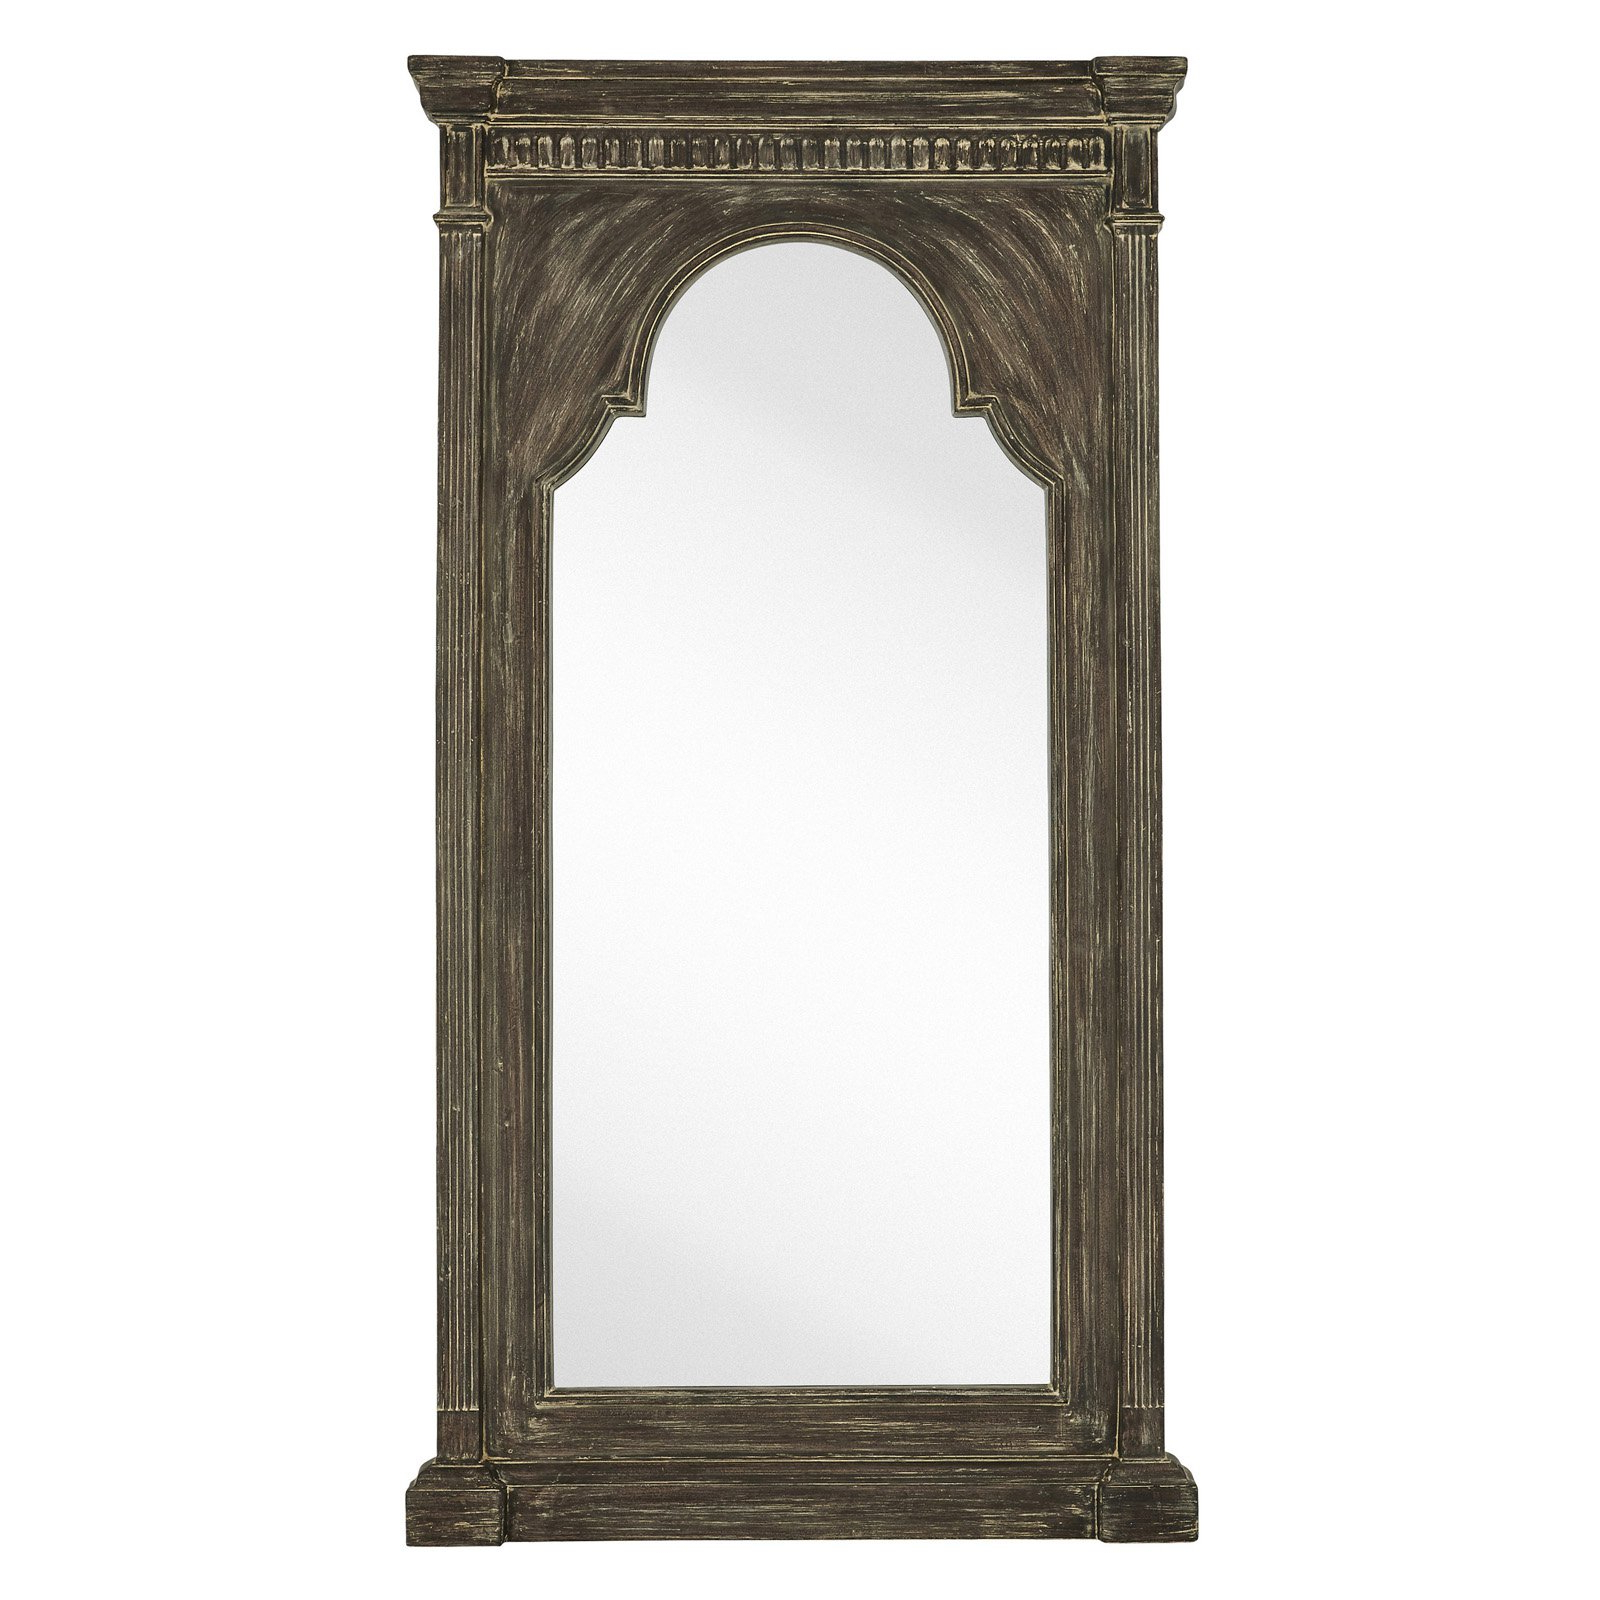 Most Popular Narrow Wall Mirrors With Regard To Majestic Oversized Tall Narrow Wall Mirror (View 17 of 20)